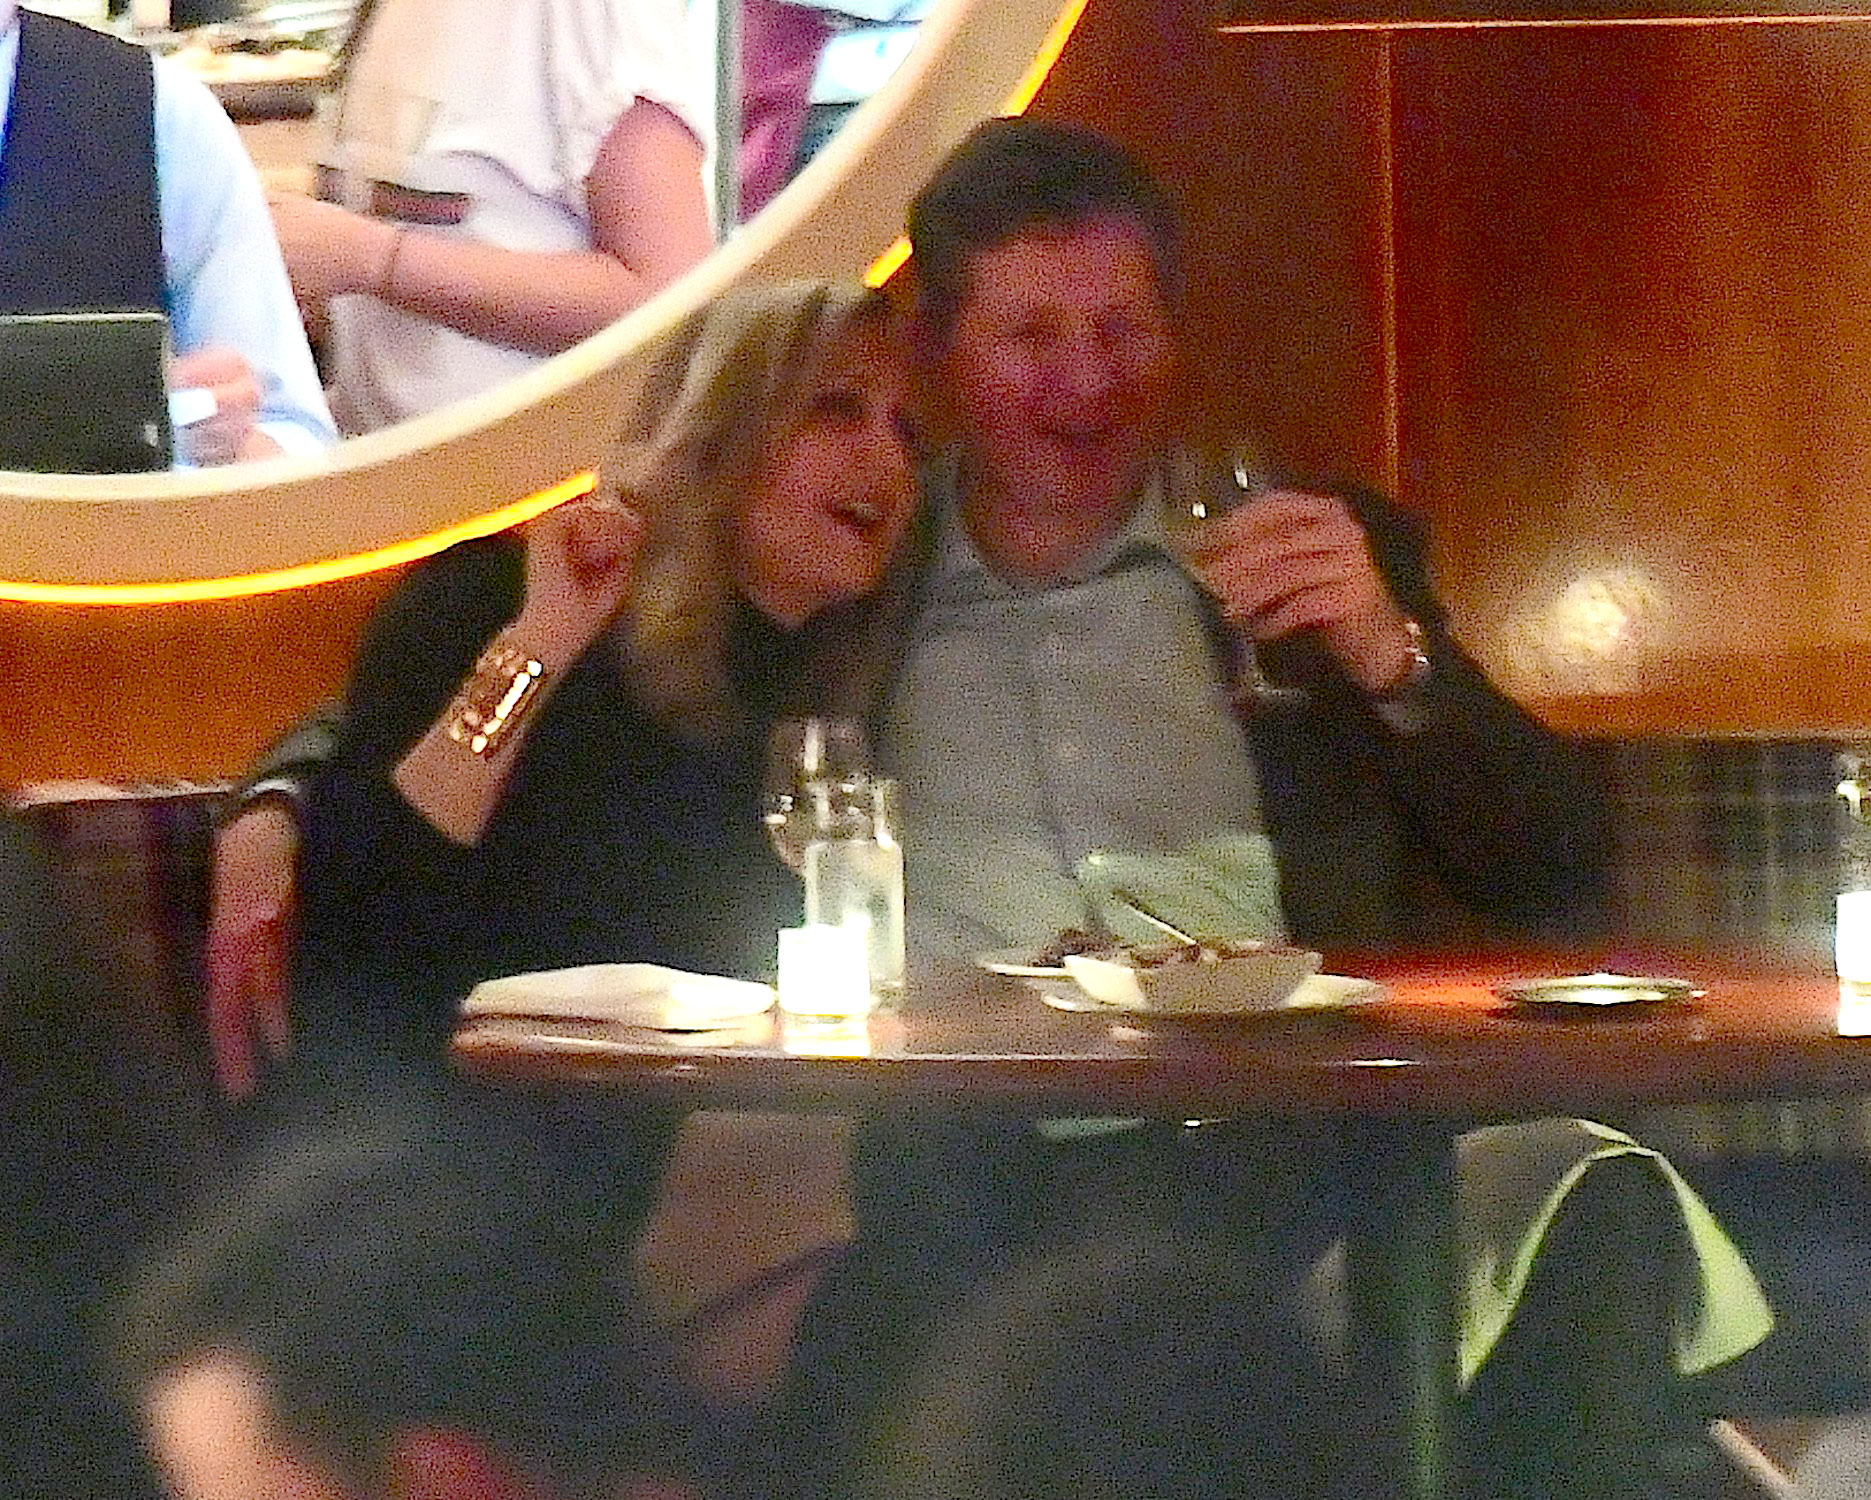 Lara Spencer Makes Out With Mystery Guy Find Out Who He Is